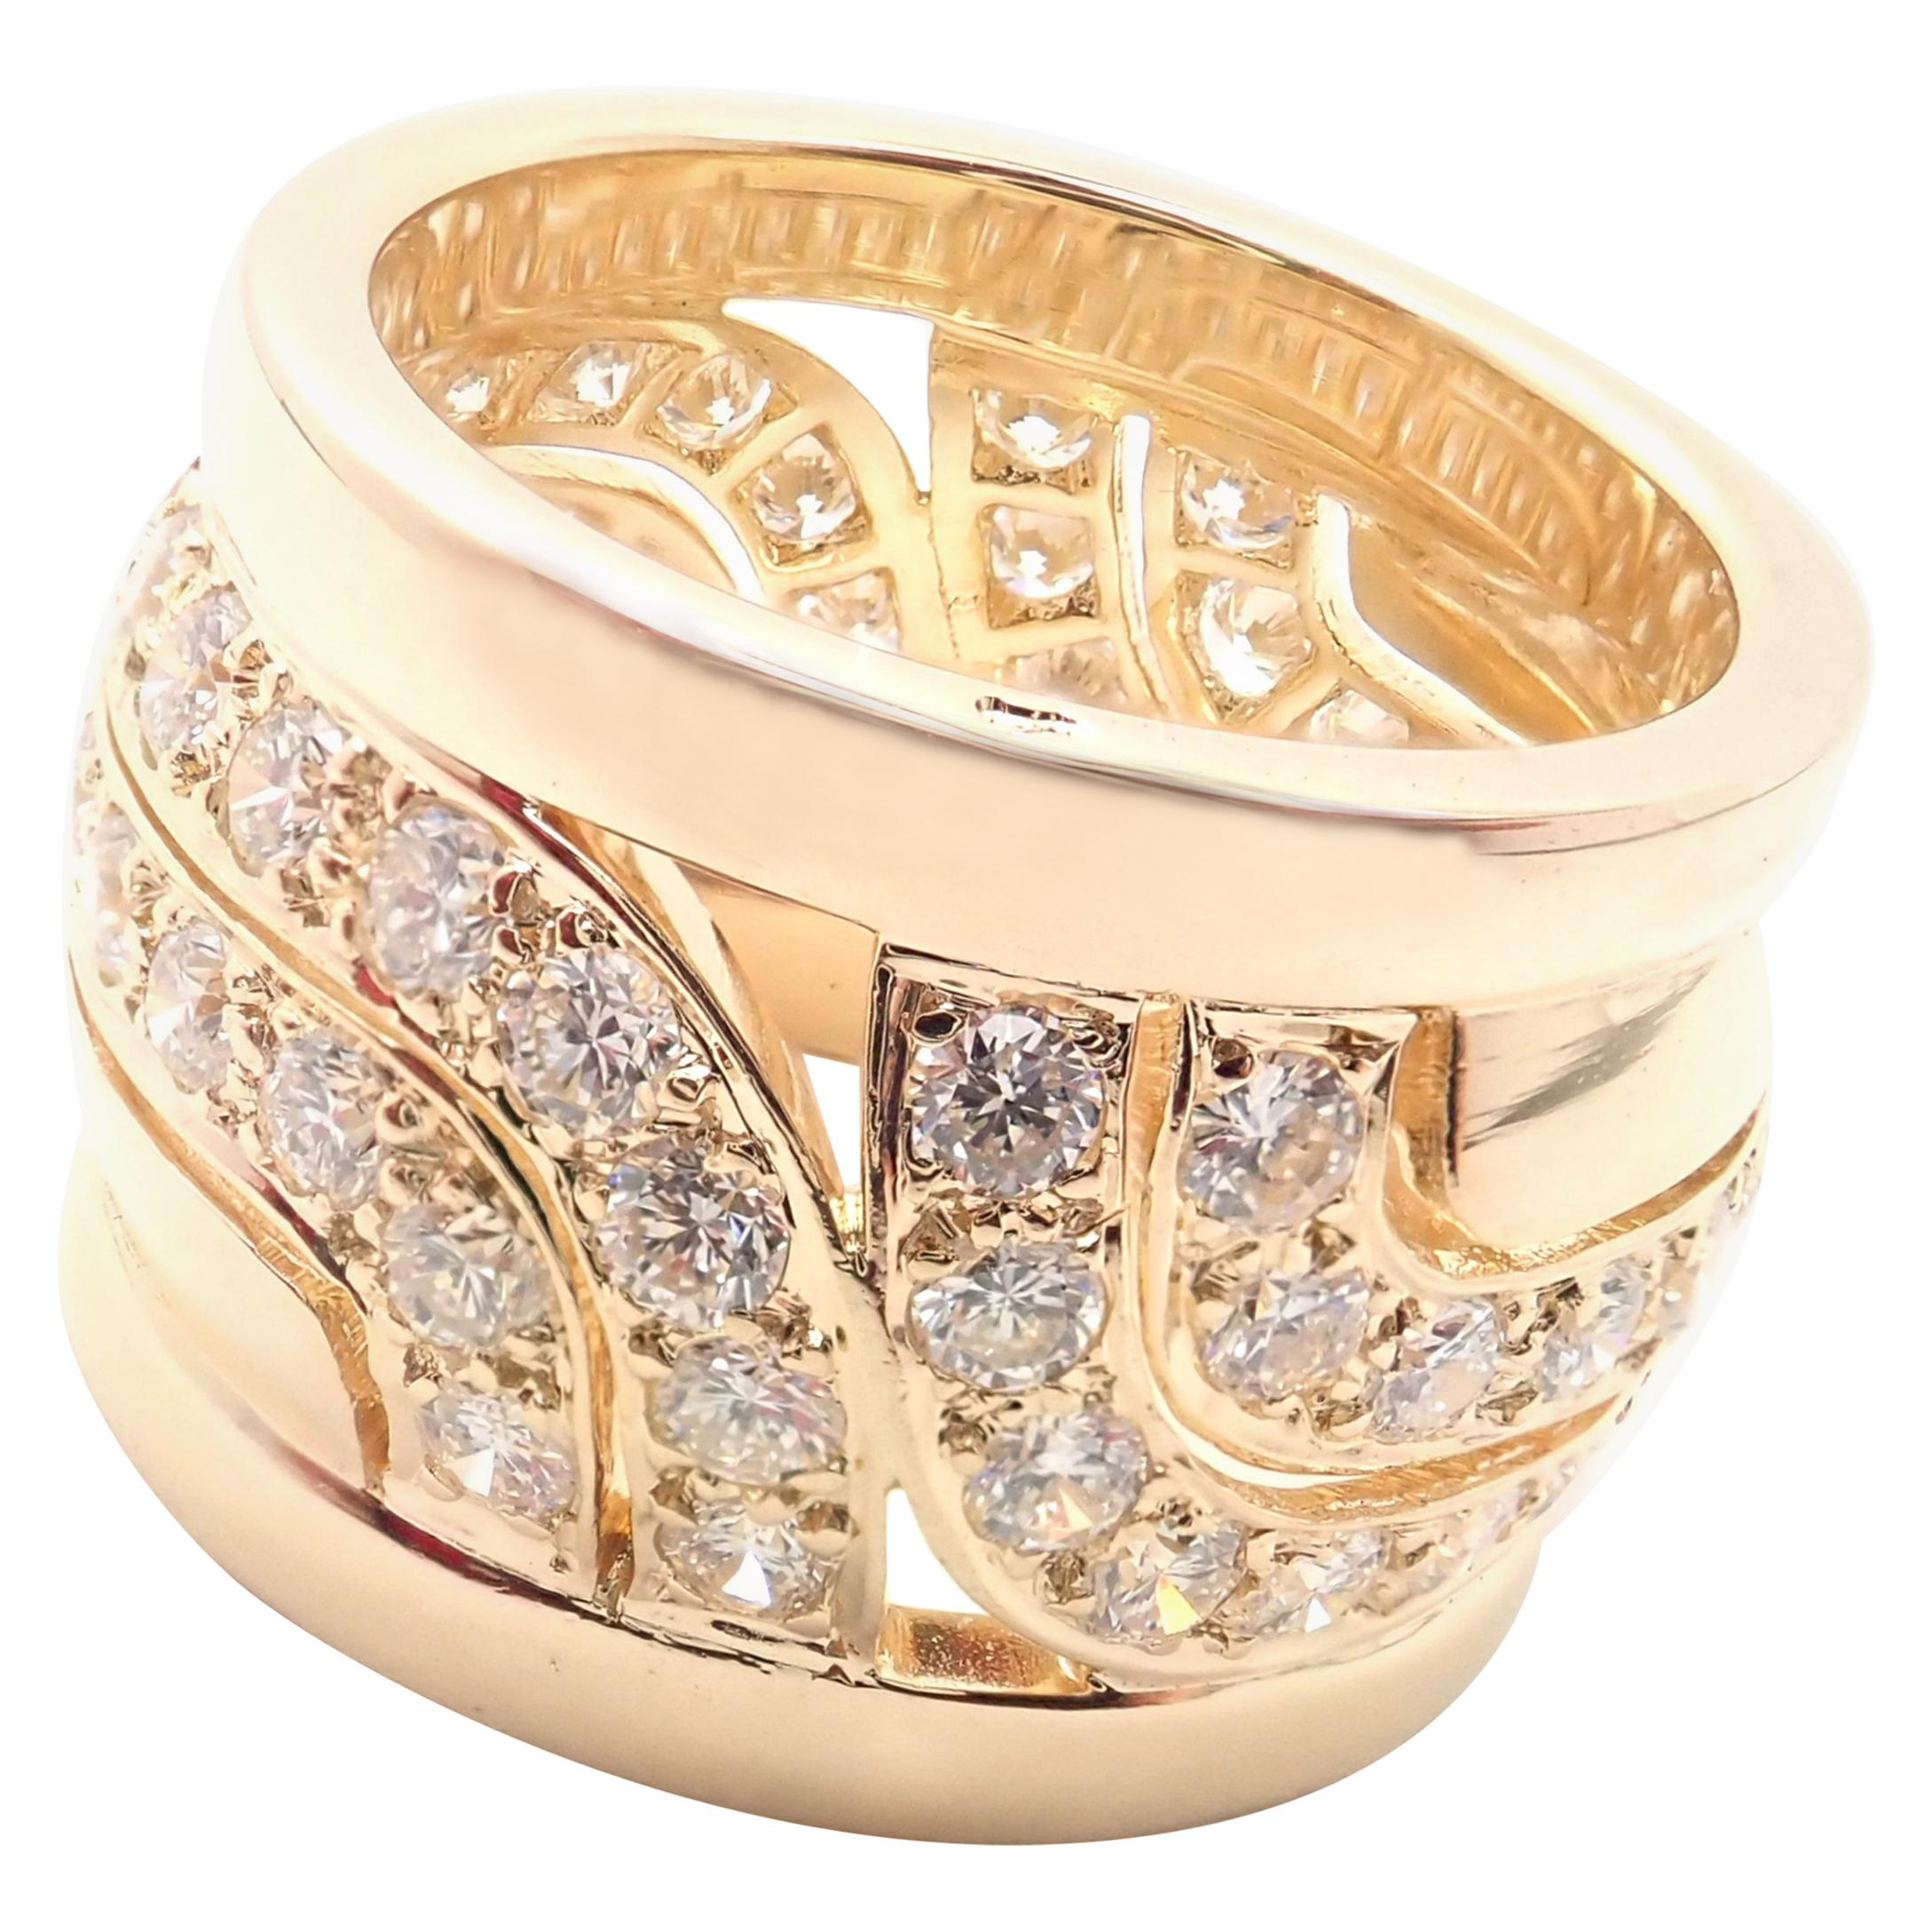 Cartier Diamond Wide Yellow Gold Band Ring